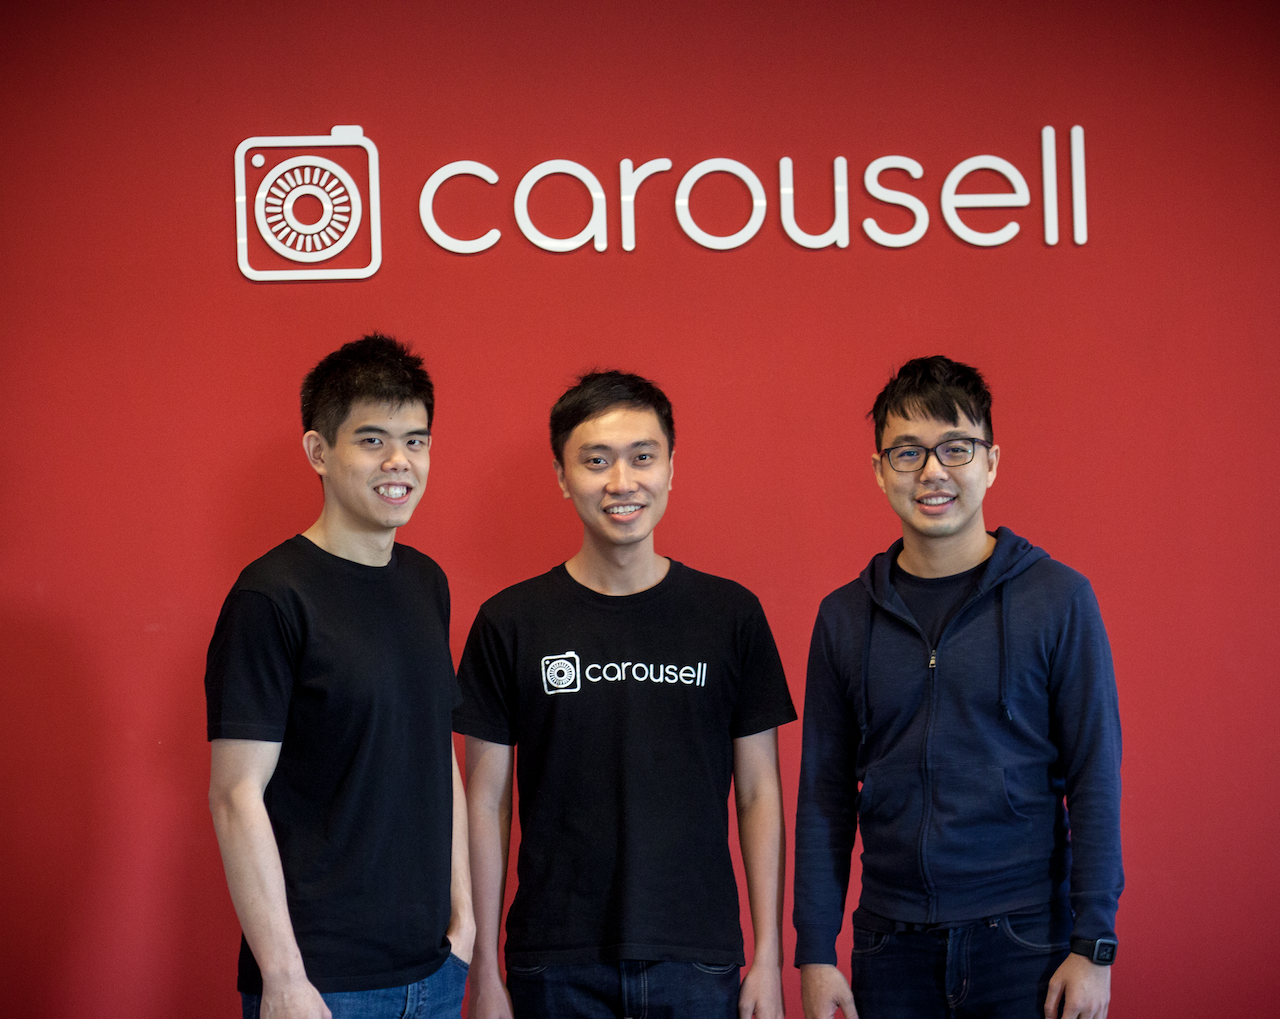 Carousell Co-founders With Logo